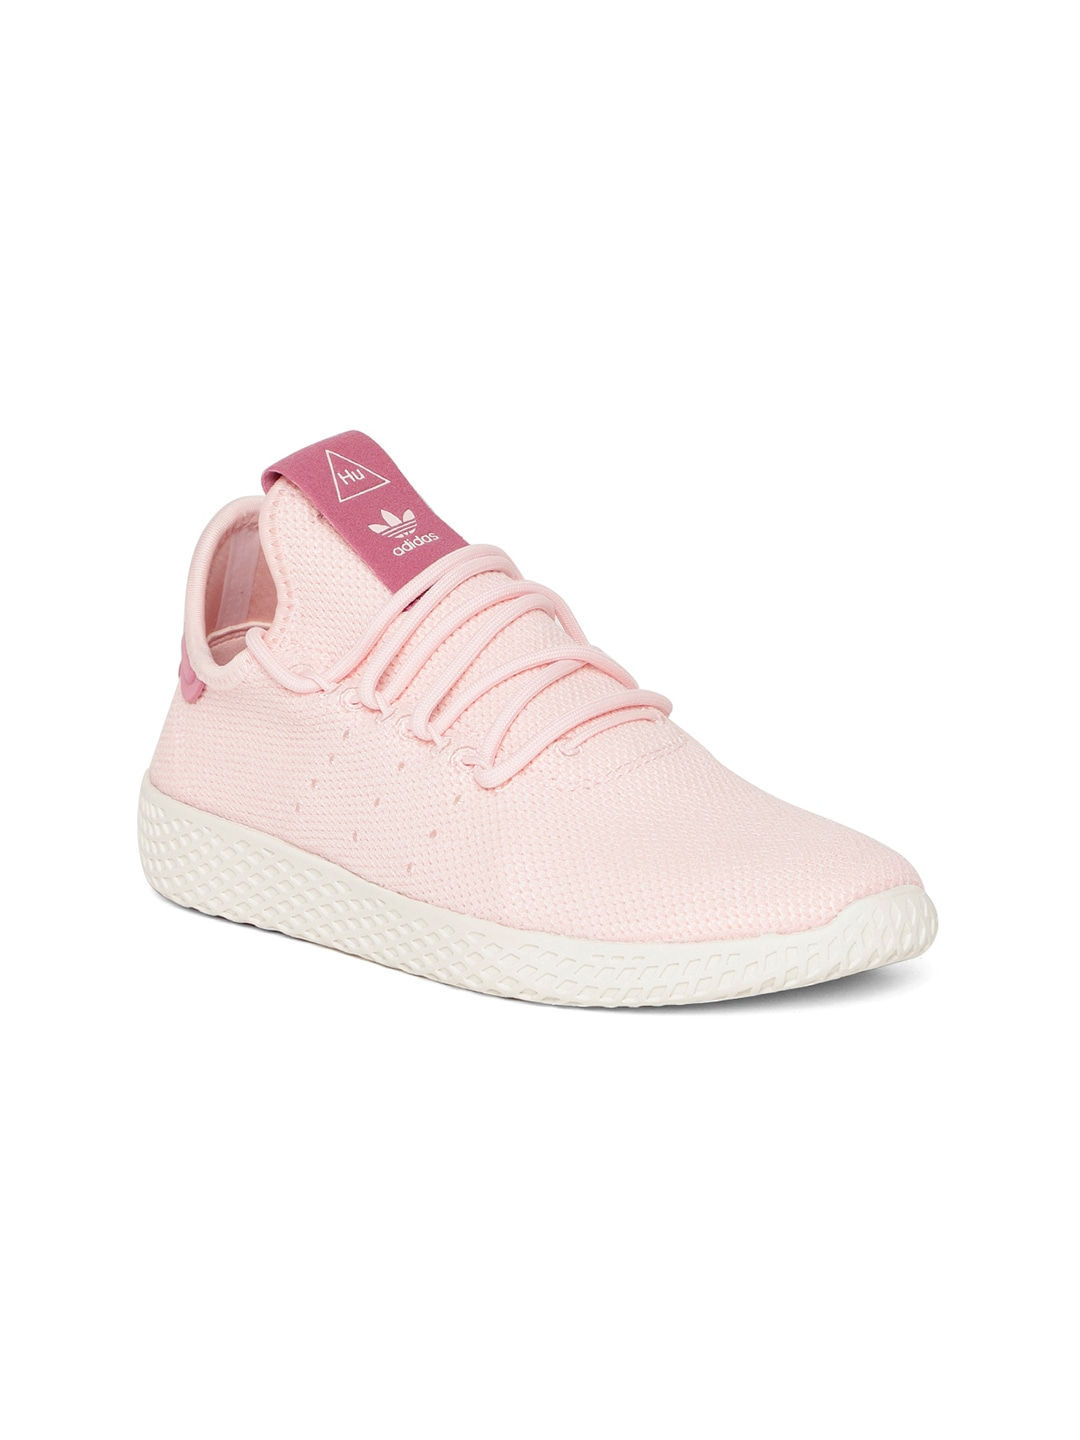 740f89d6b Adidas Pink Shoes - Buy Adidas Pink Shoes online in India